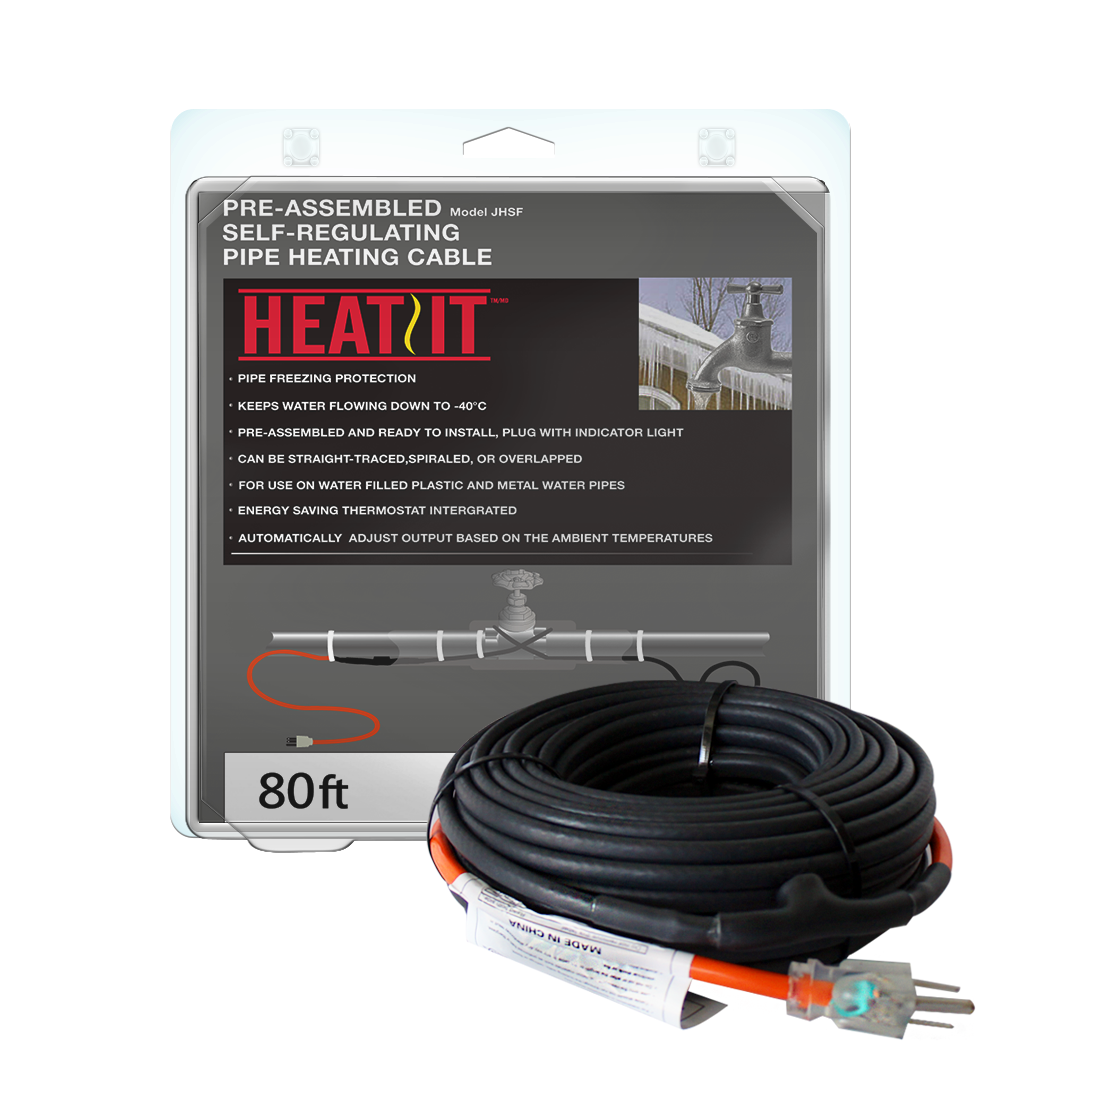 Heatit Jhsf 120v Self Regulating Pre Assembled Pipe